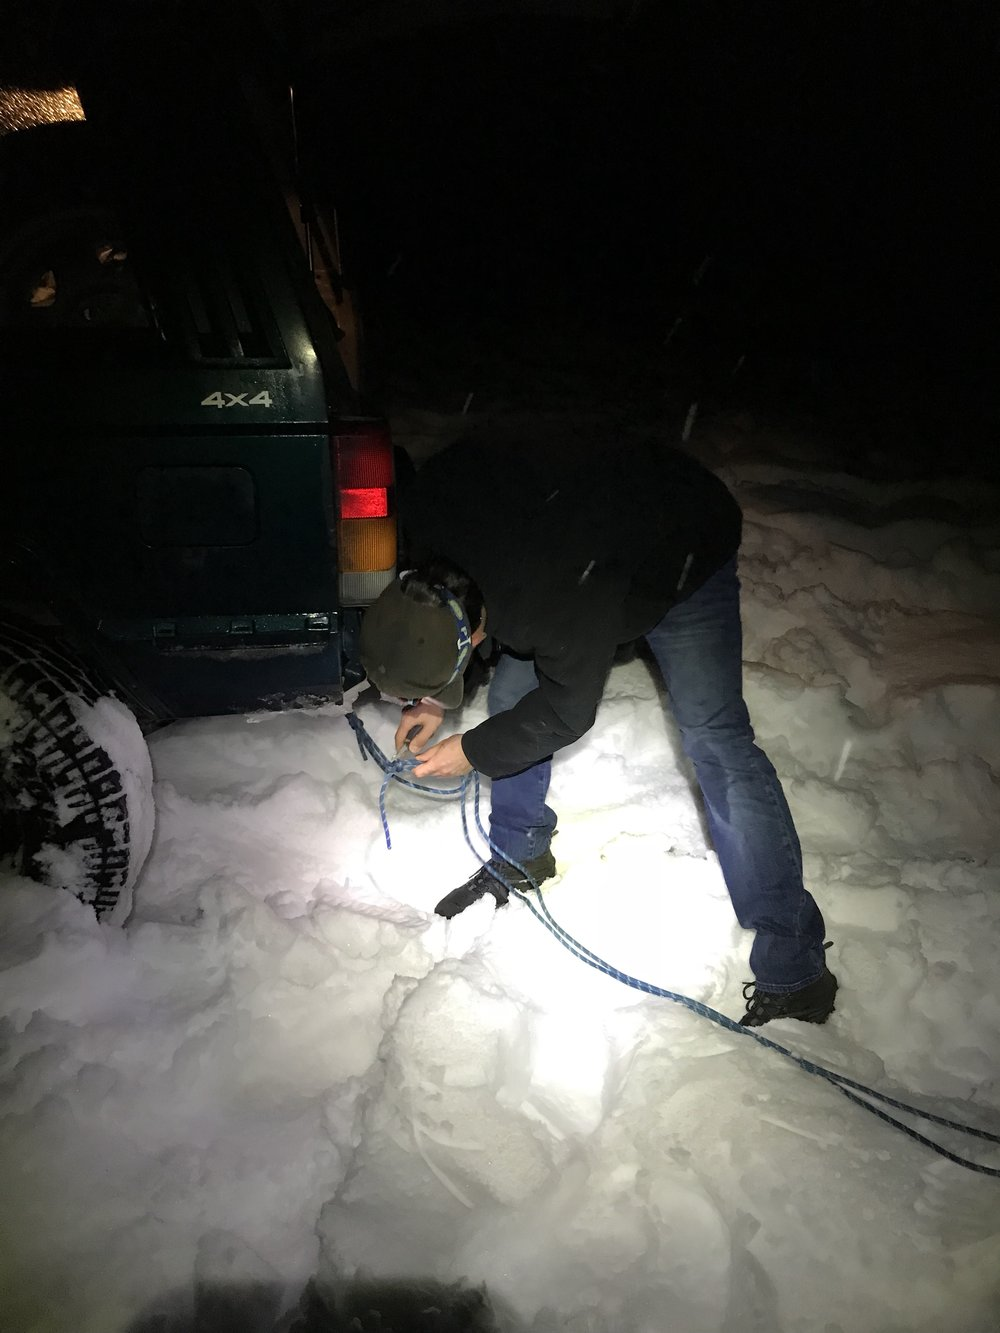 MacGyvering a tow strap.